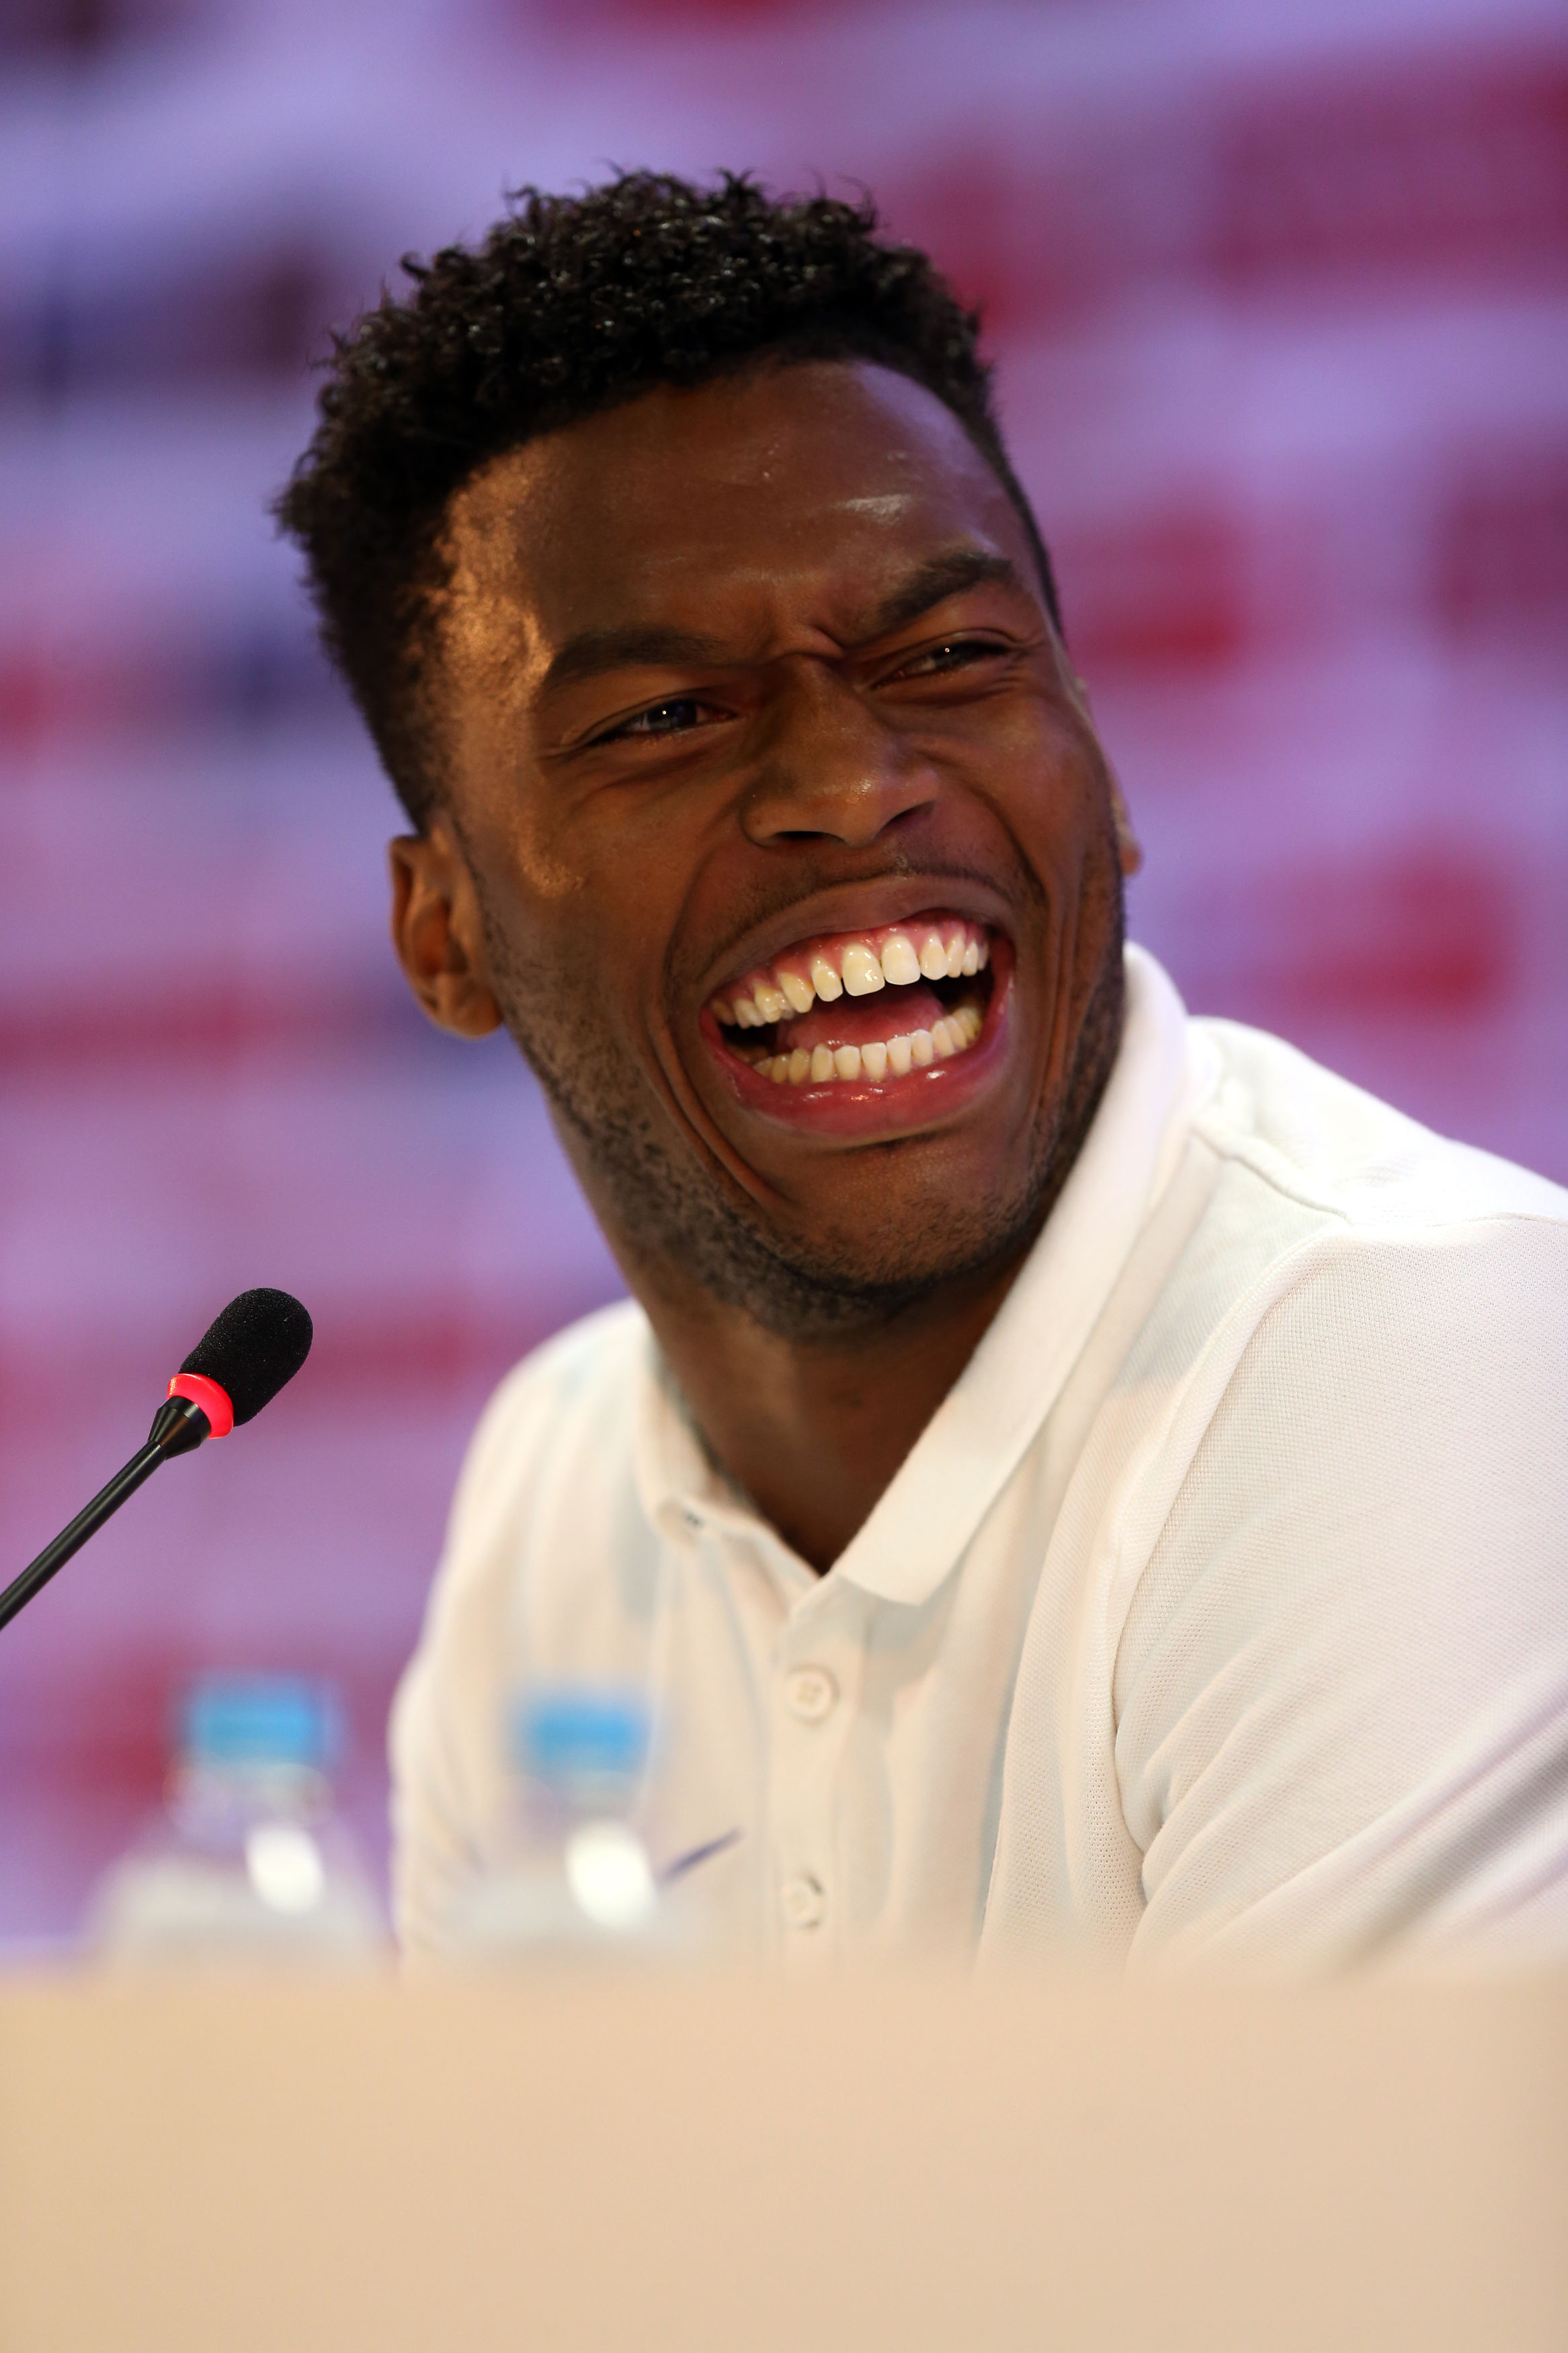 HAVING A LAUGH: Daniel Sturridge shares a joke during England's press conference in Rio yesterday